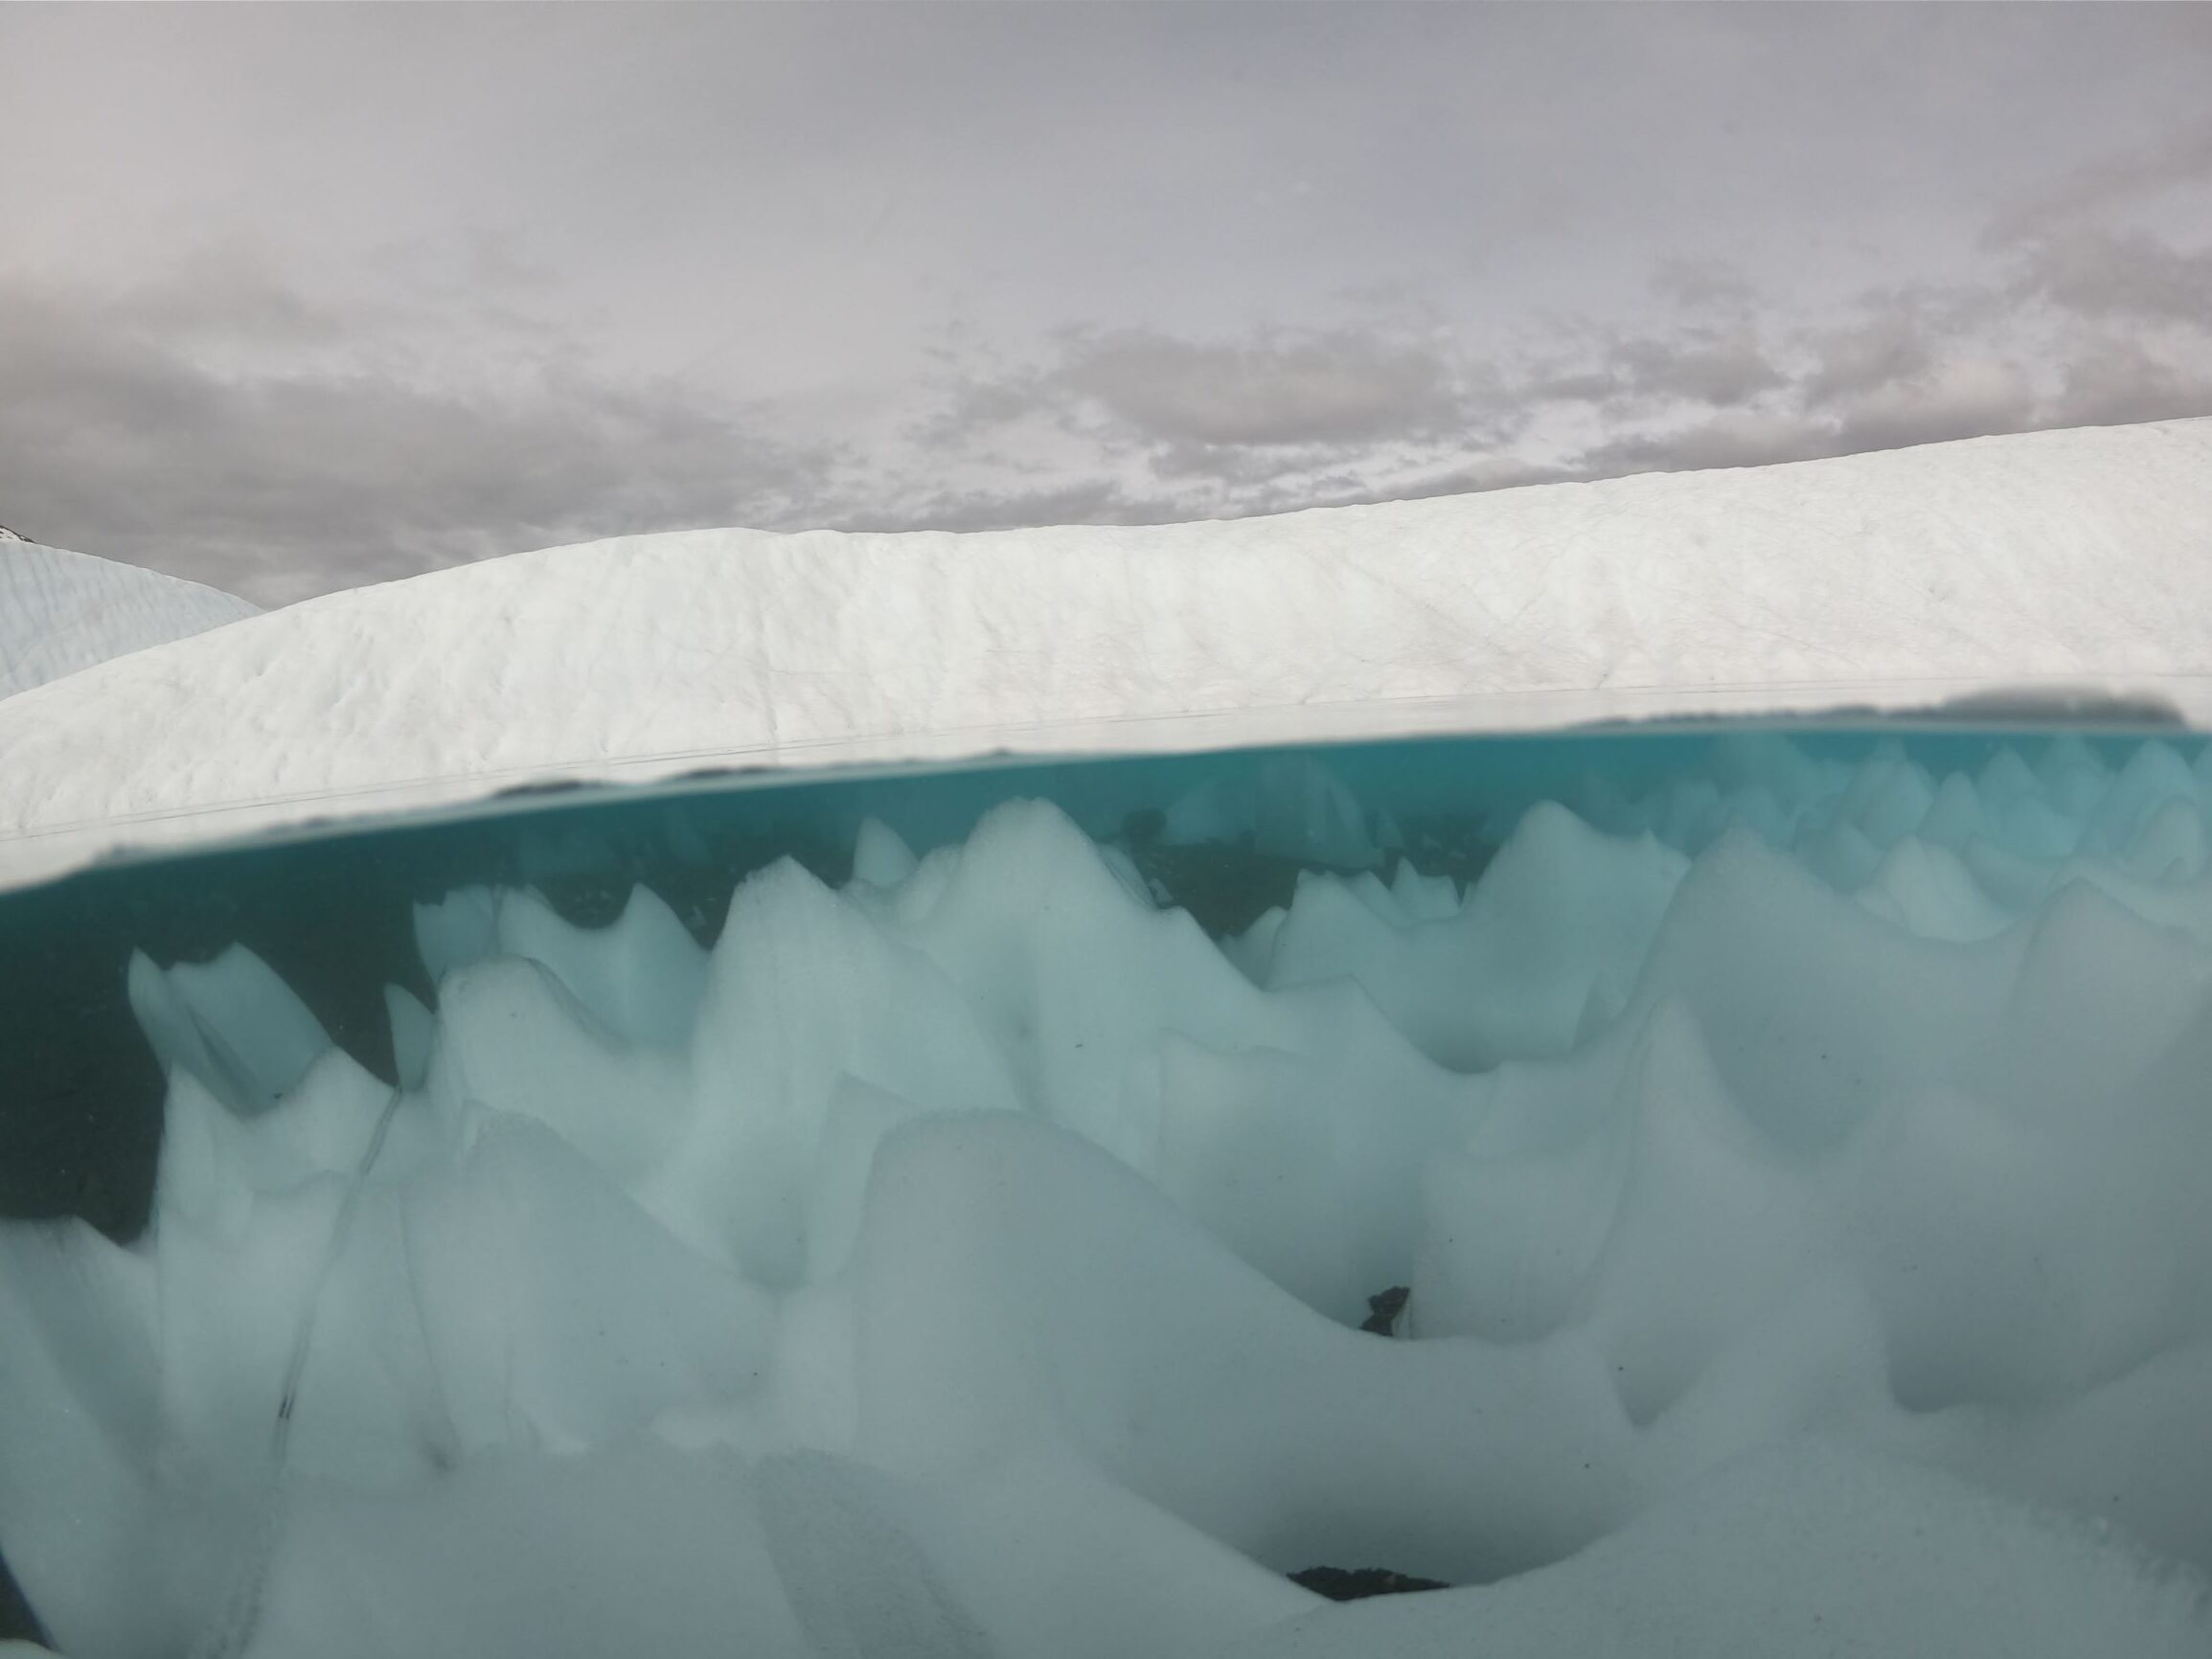 glacier ice and water